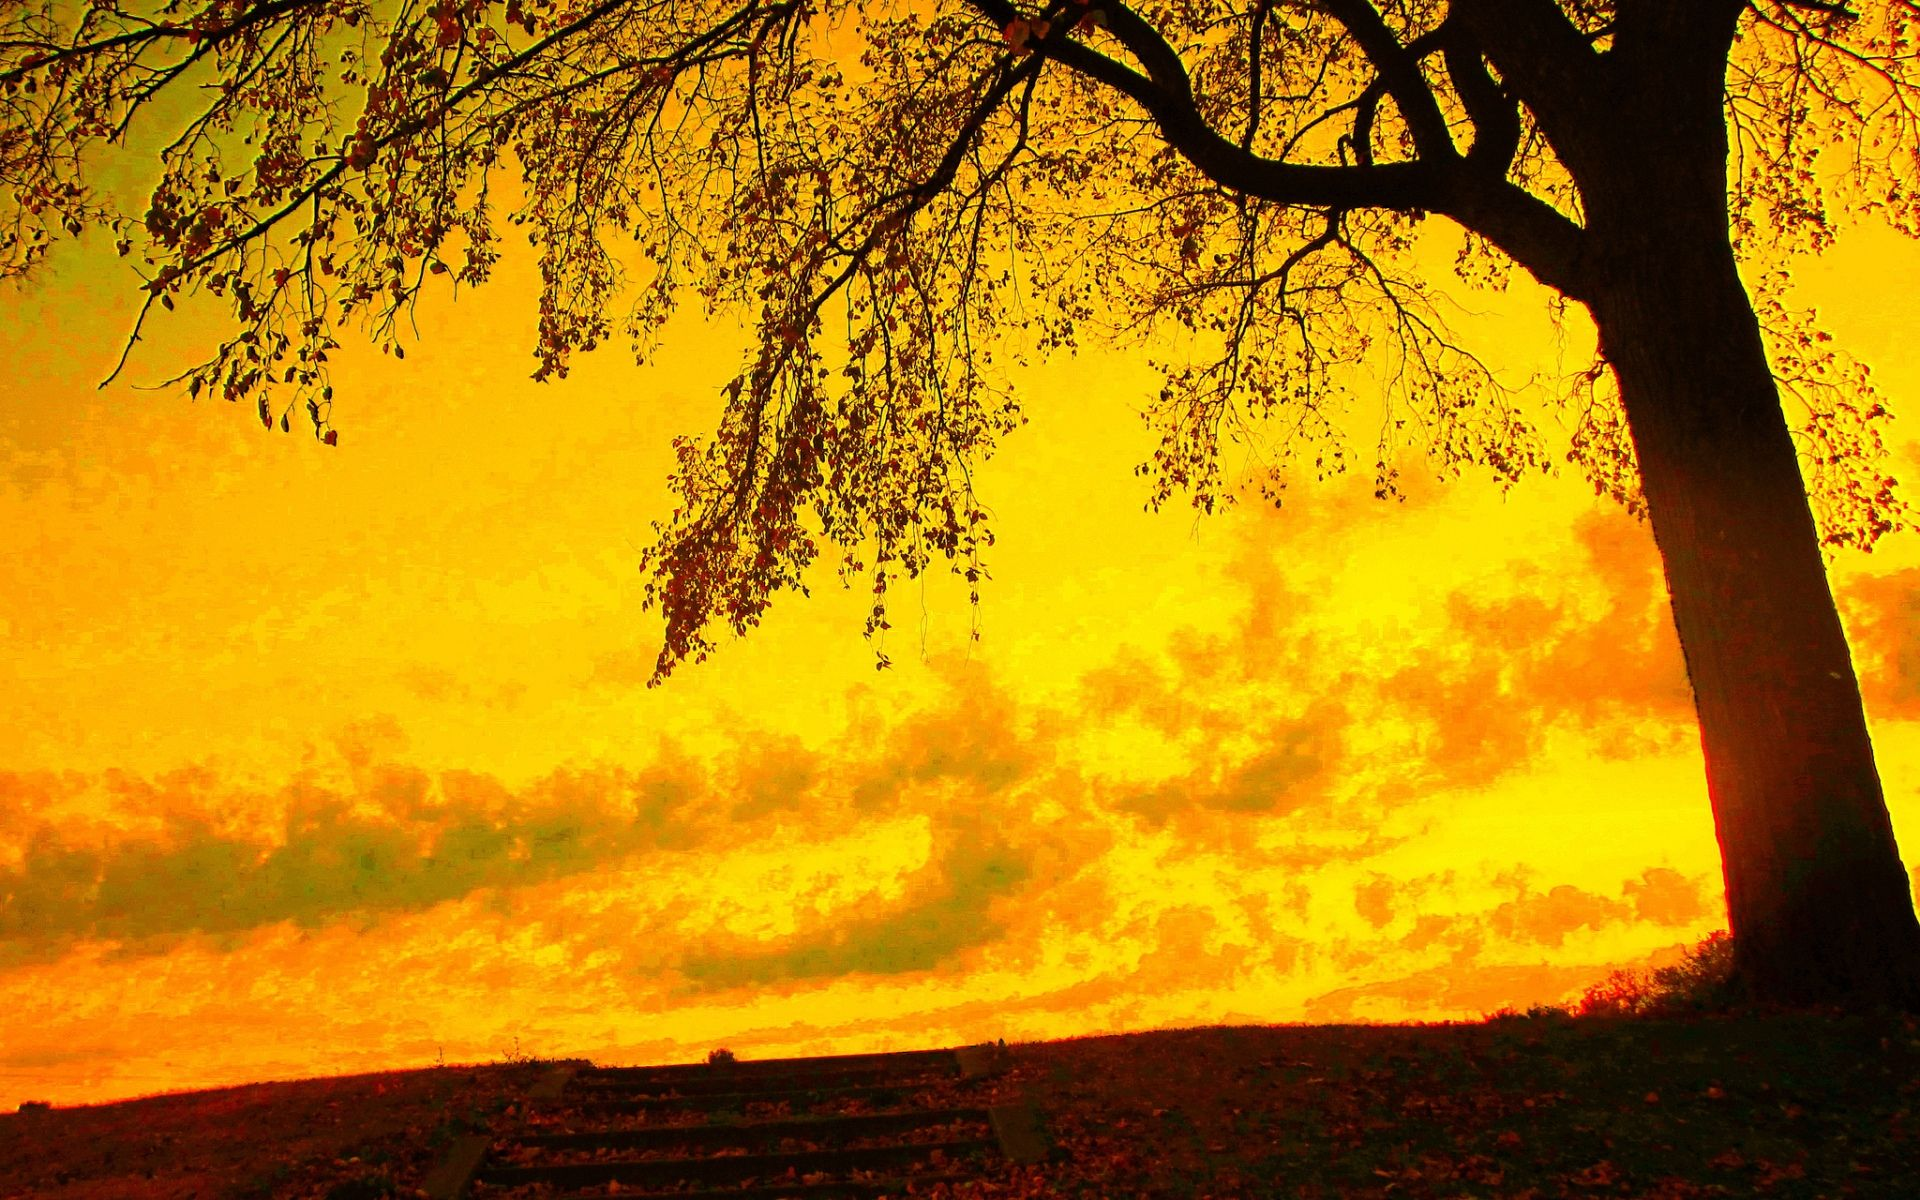 Yellow Aesthetic Sunset Wallpapers - Top Free Yellow ...